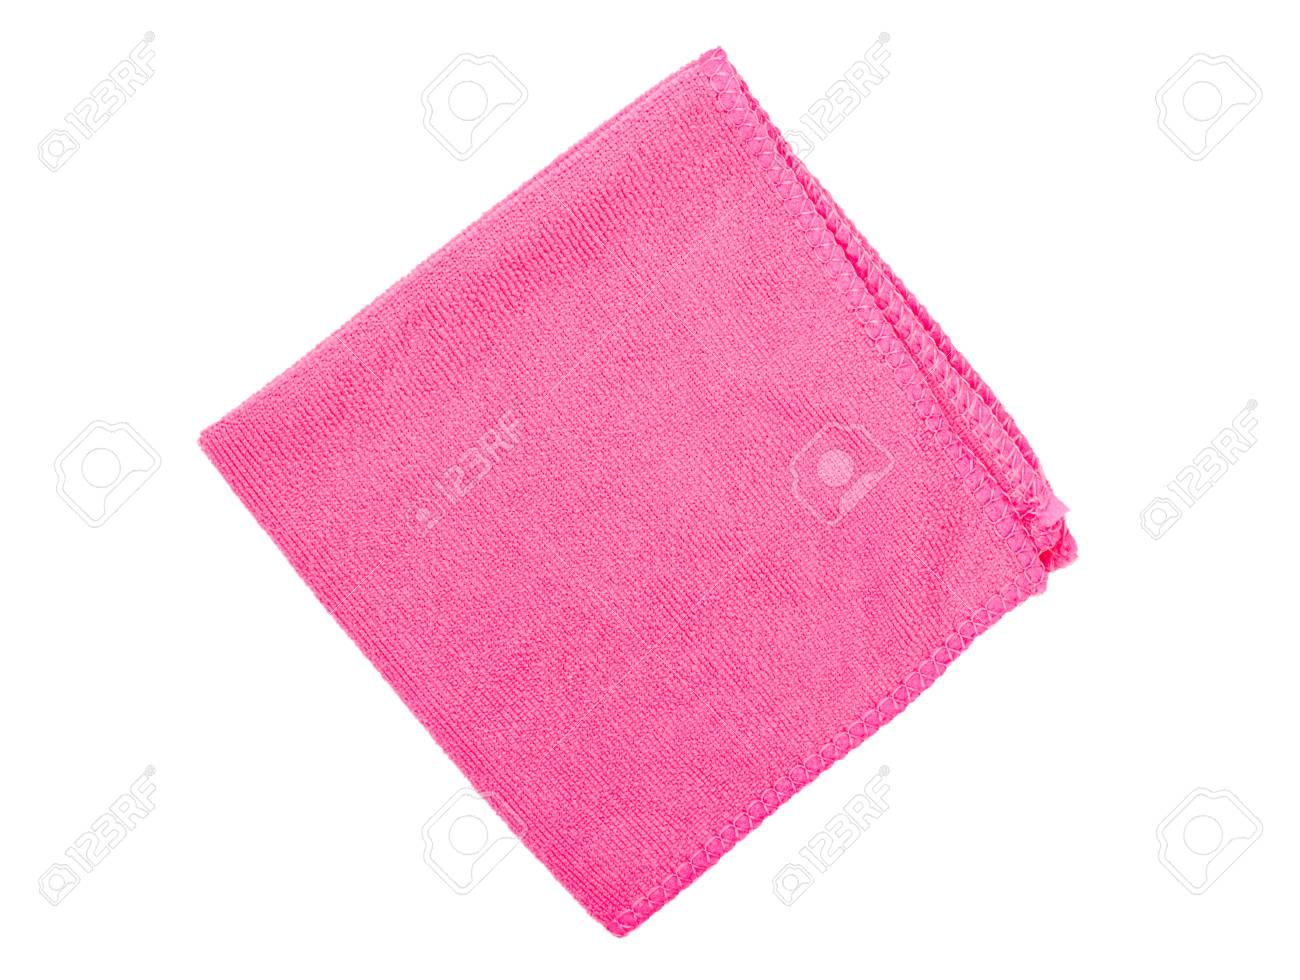 Small pink kitchen towel on white background, top view